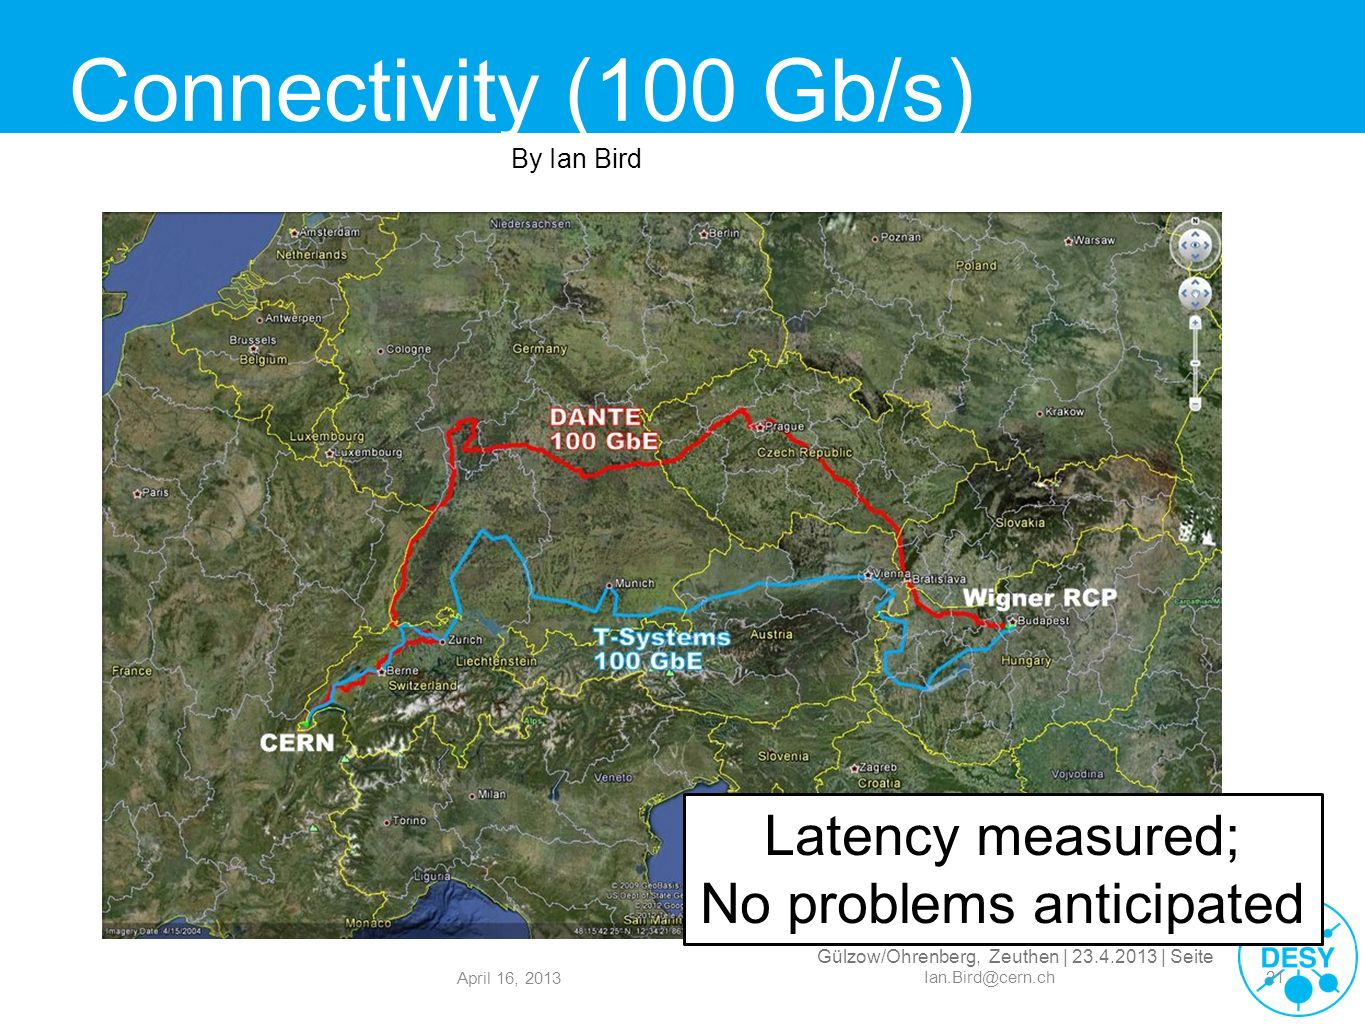 Gülzow/Ohrenberg, Zeuthen | 23.4.2013 | Seite Connectivity (100 Gb/s) April 16, 2013 Ian.Bird@cern.ch21 Latency measured; No problems anticipated By I